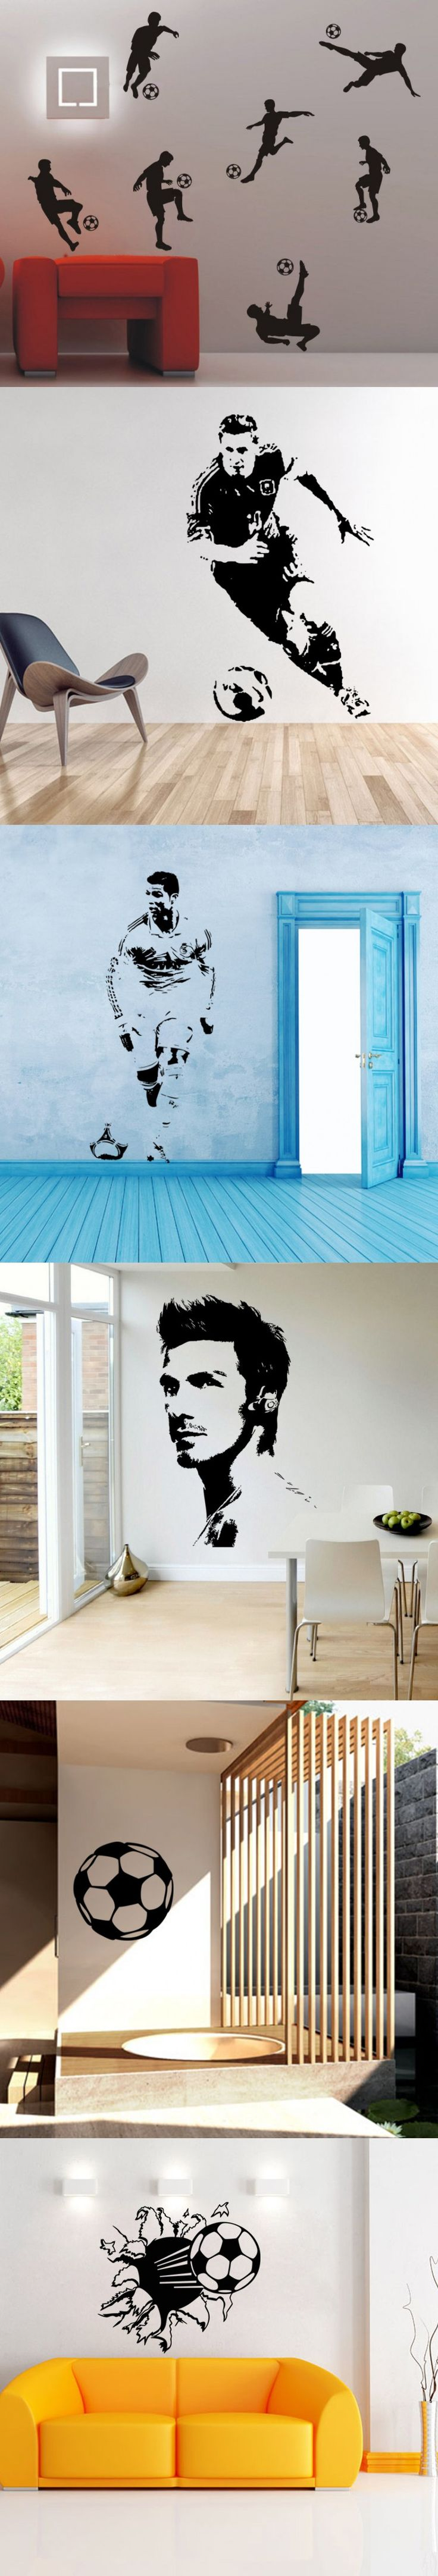 Boys soccer bedroom ideas - Soccer Football And Famous Soccer Players Wall Stickers Home Decor Wall Decal For Kids Room Sport Boy Bedroom Mural Wallpaper